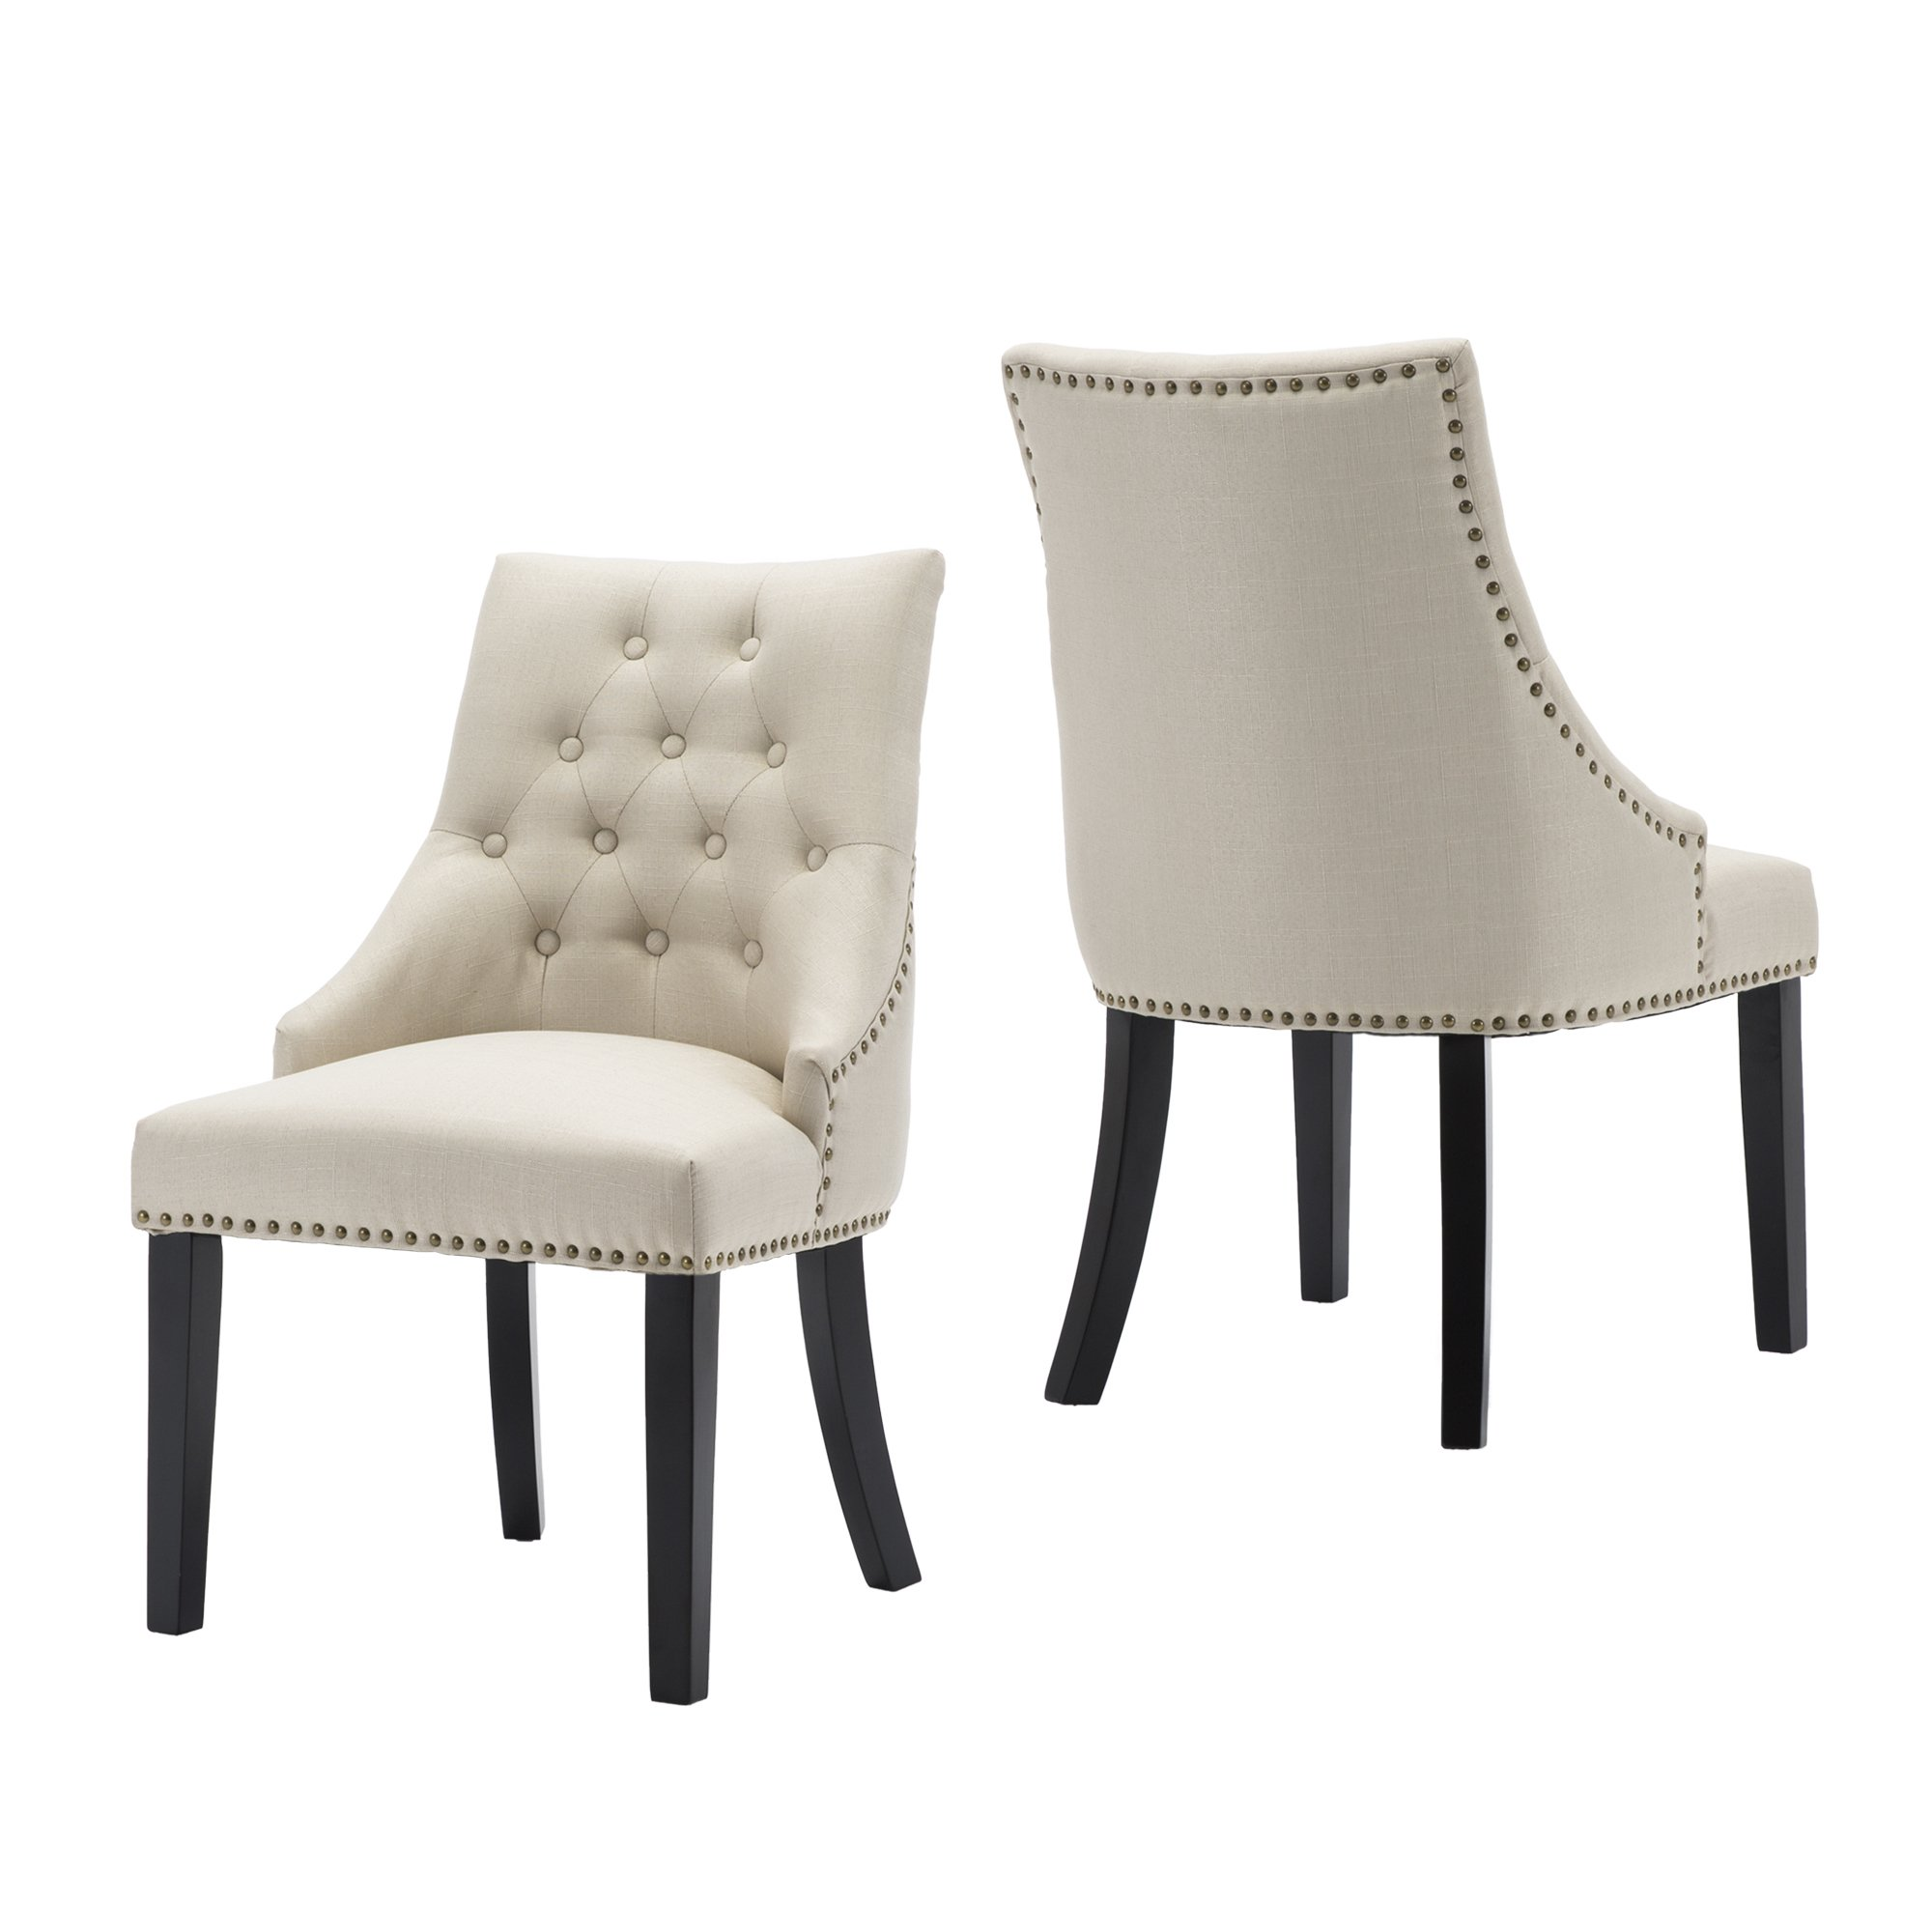 LSSBOUGHT Set of 2 Fabric Dining Chairs Leisure Padded Chairs with Black Solid Wooden Legs,Beige by LSSBOUGHT (Image #1)